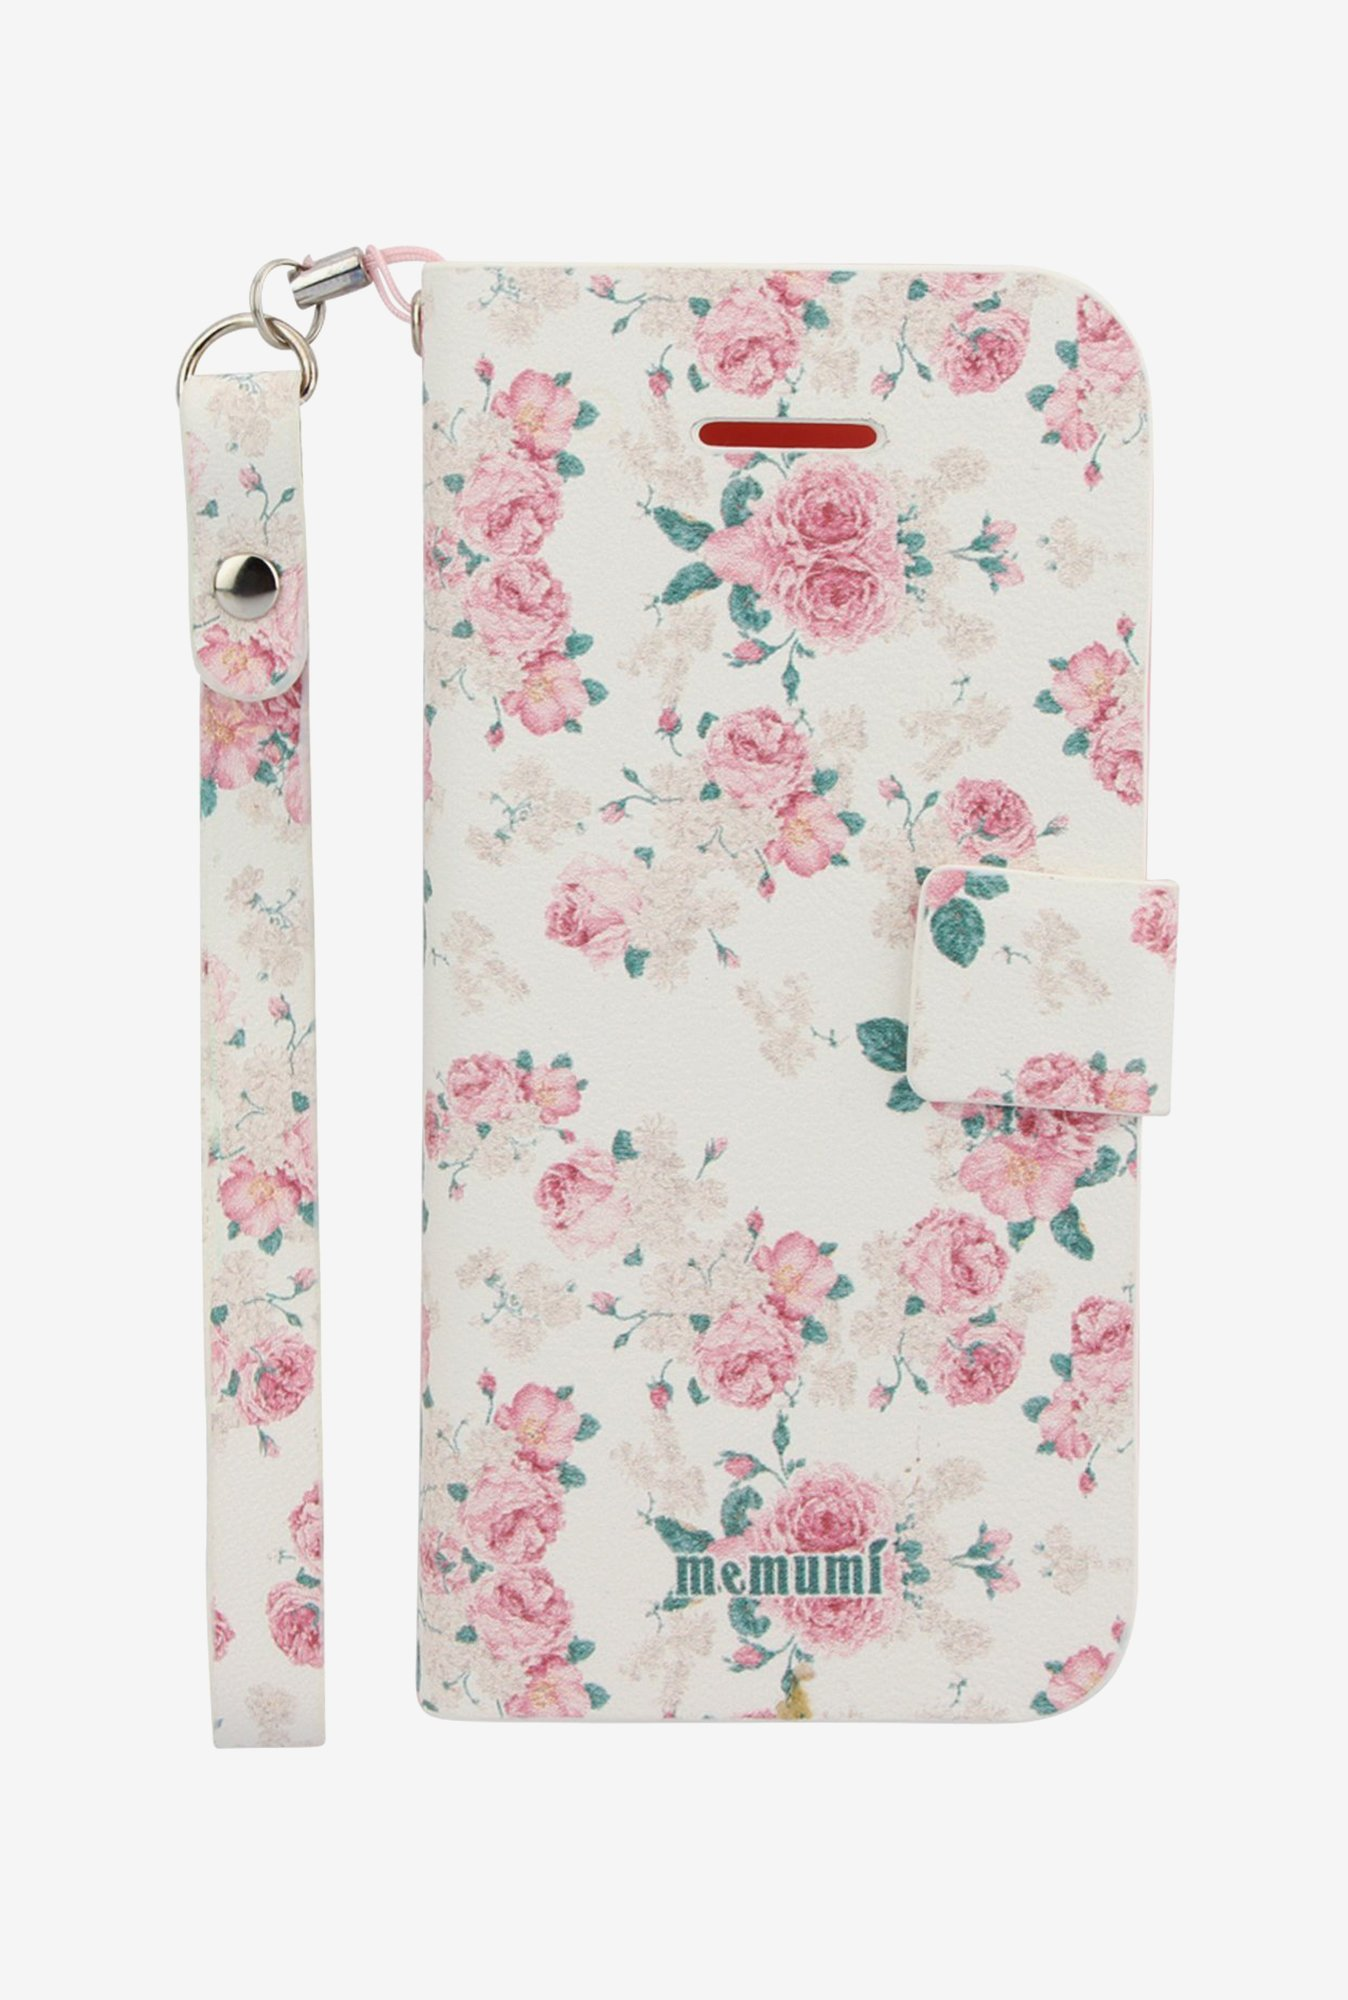 Memumi Flower Printed Flip Cover for iPhone 5C (White)